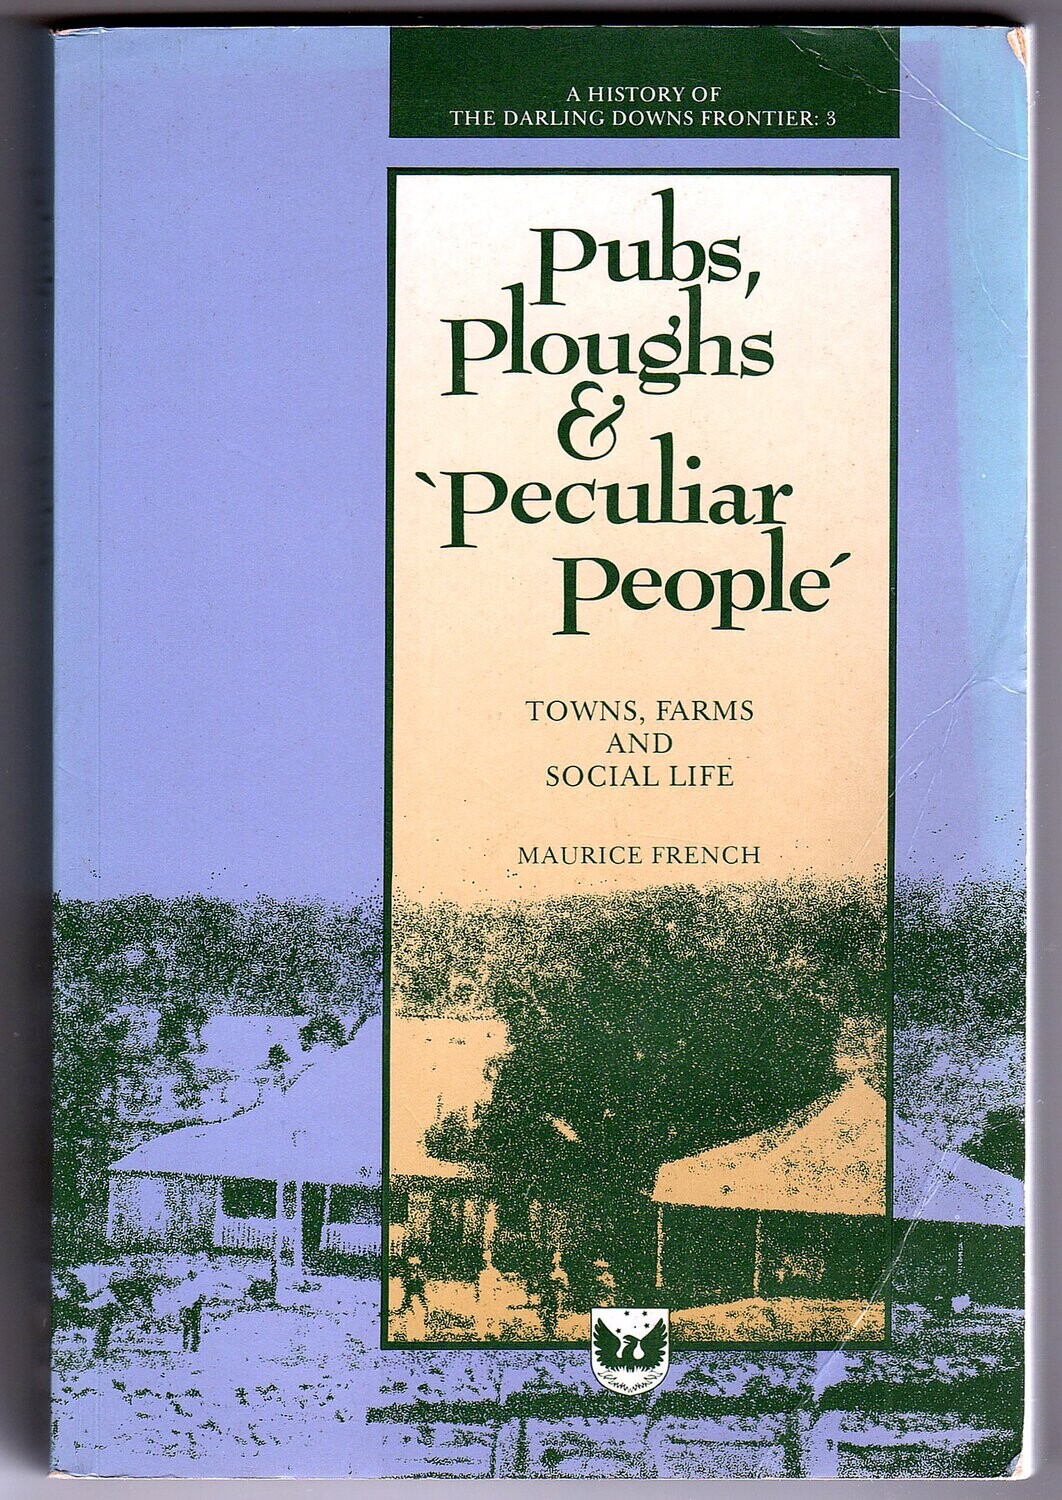 Pubs, Ploughs and Peculiar People: Towns, Farms and Social Life: A History of the Darling Downs Frontier 3 by Maurice French